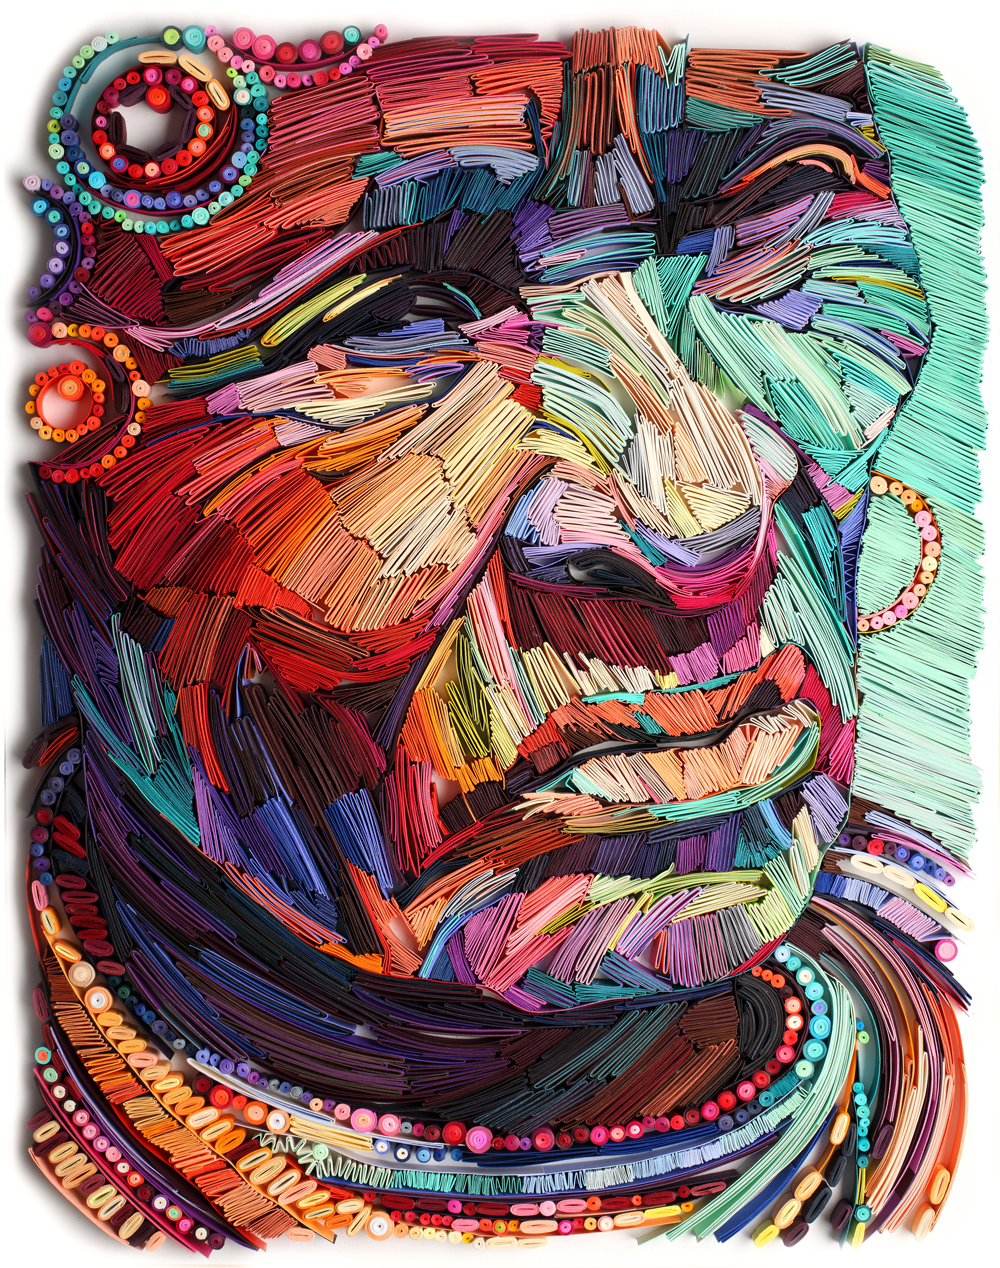 multicolored artistic drawing of a face